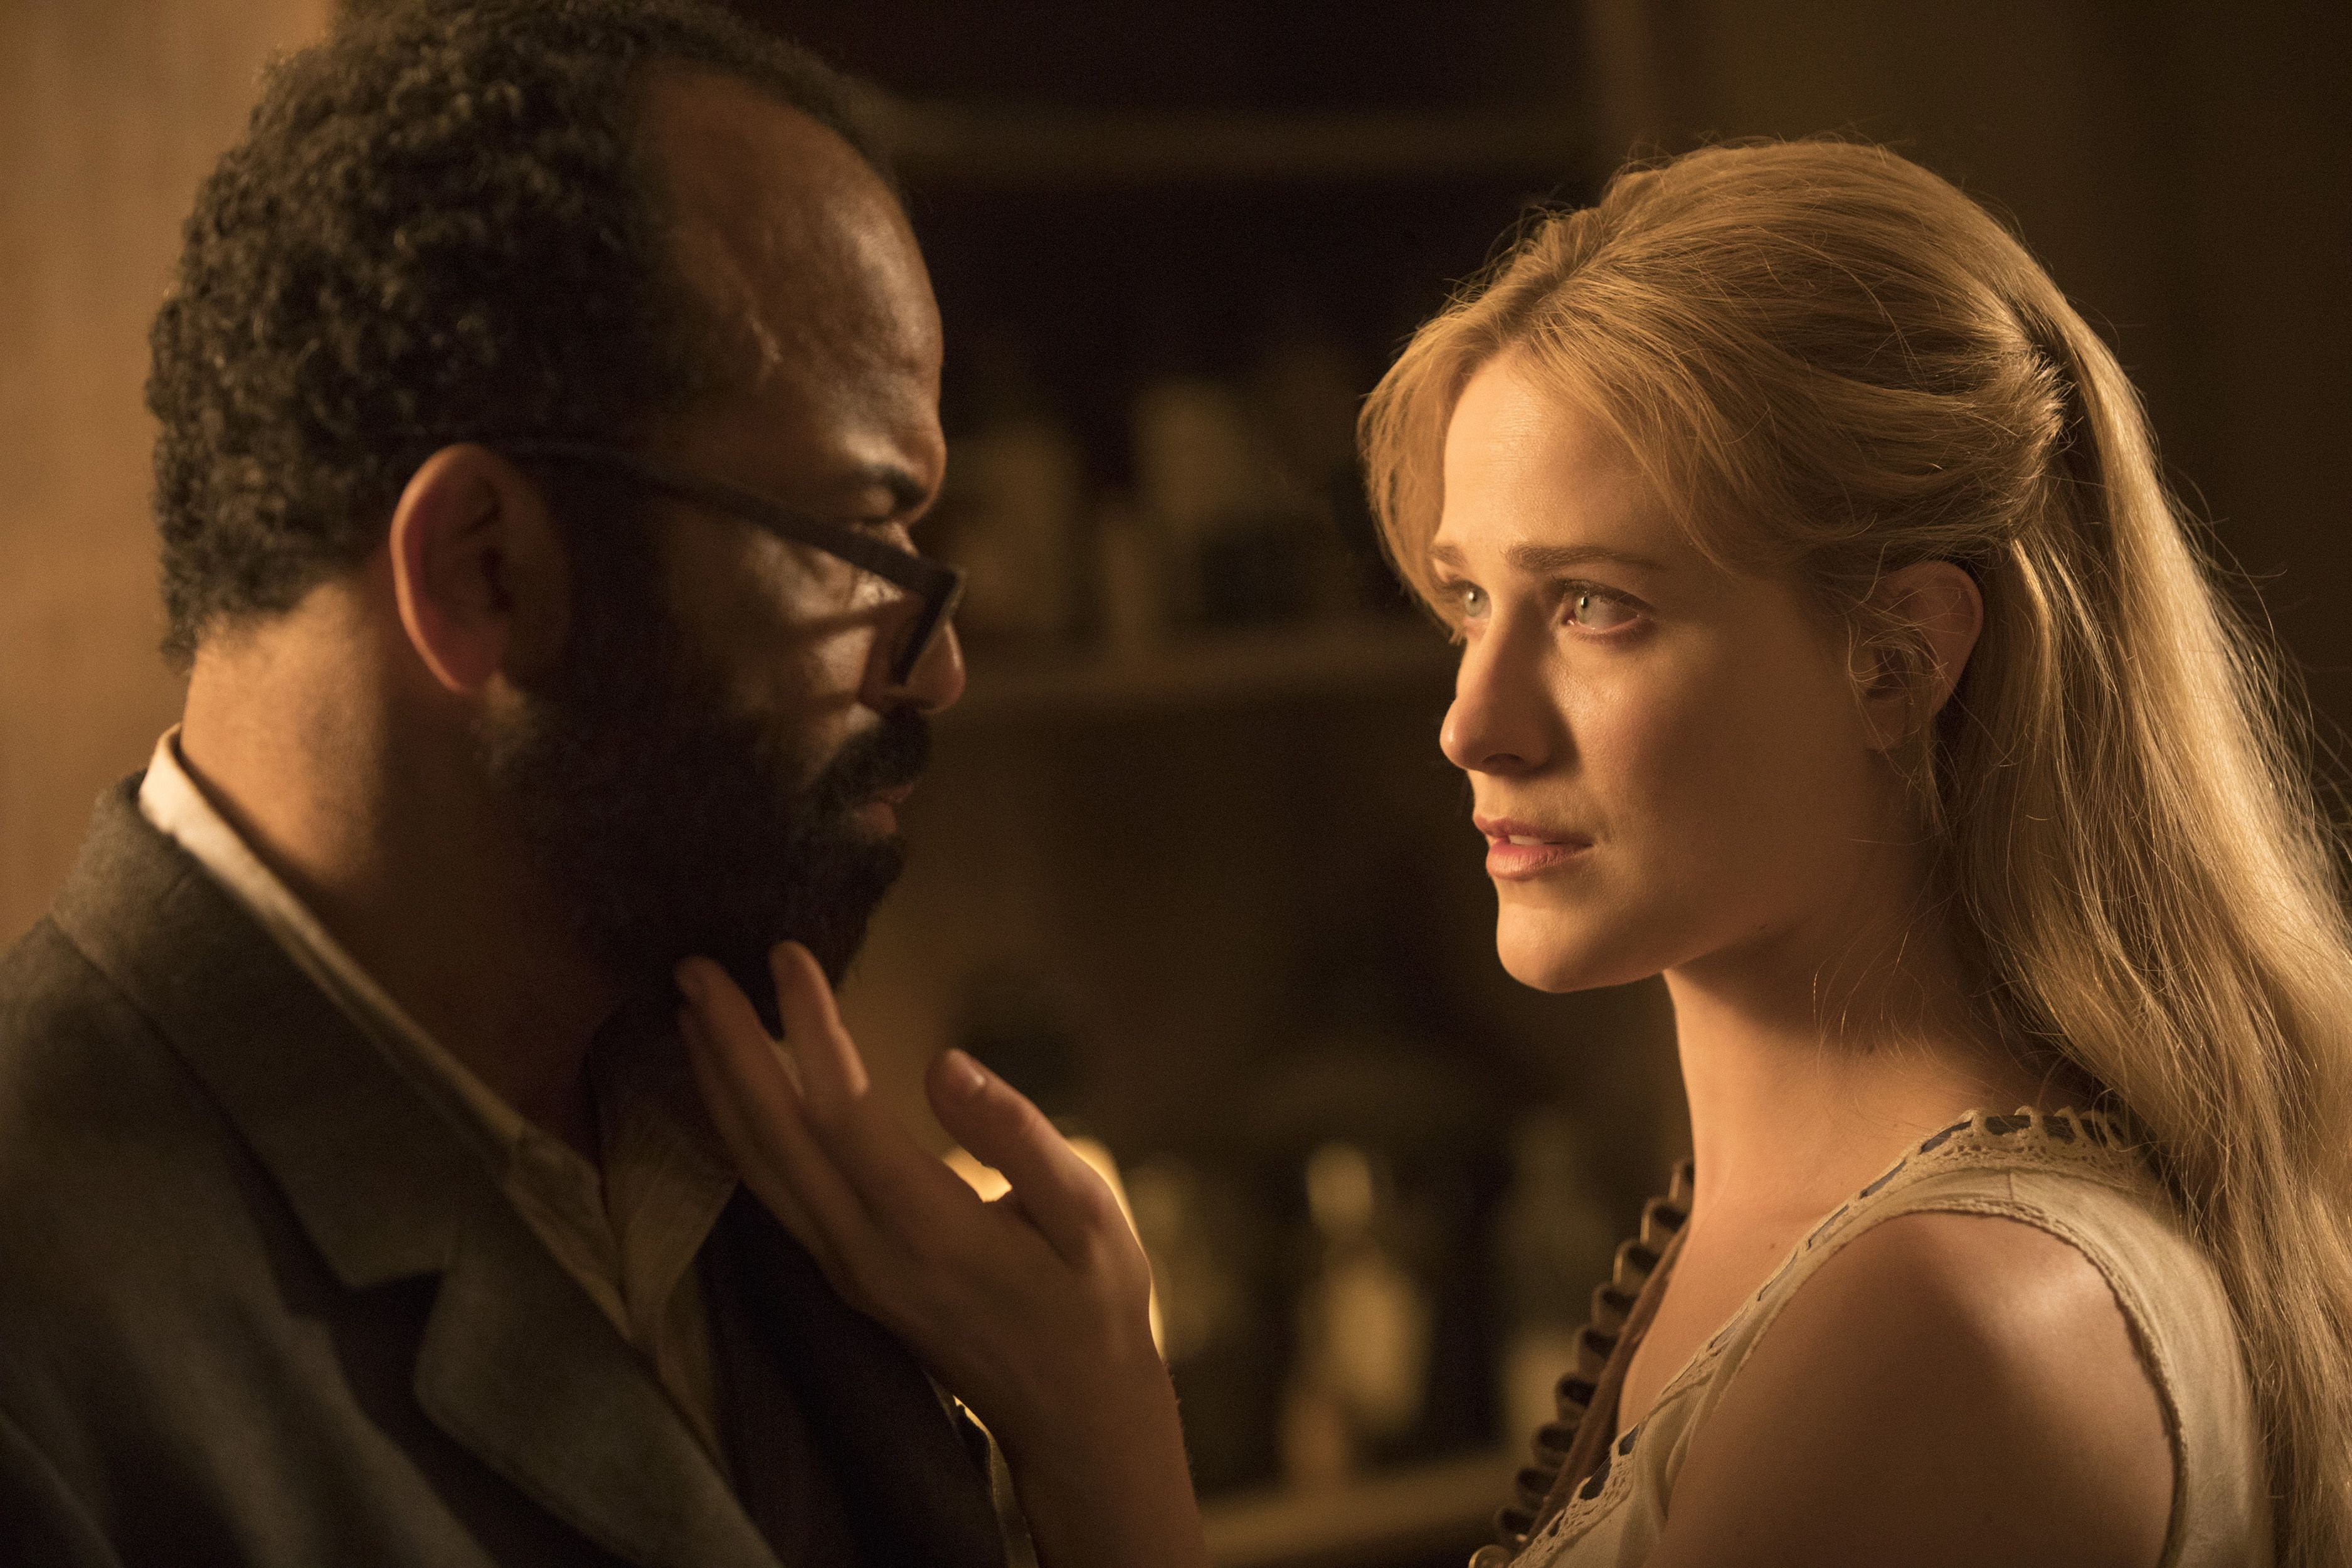 The Westworld Season 2 Theory Tracker: A Running List of Comprehensive Hypotheses